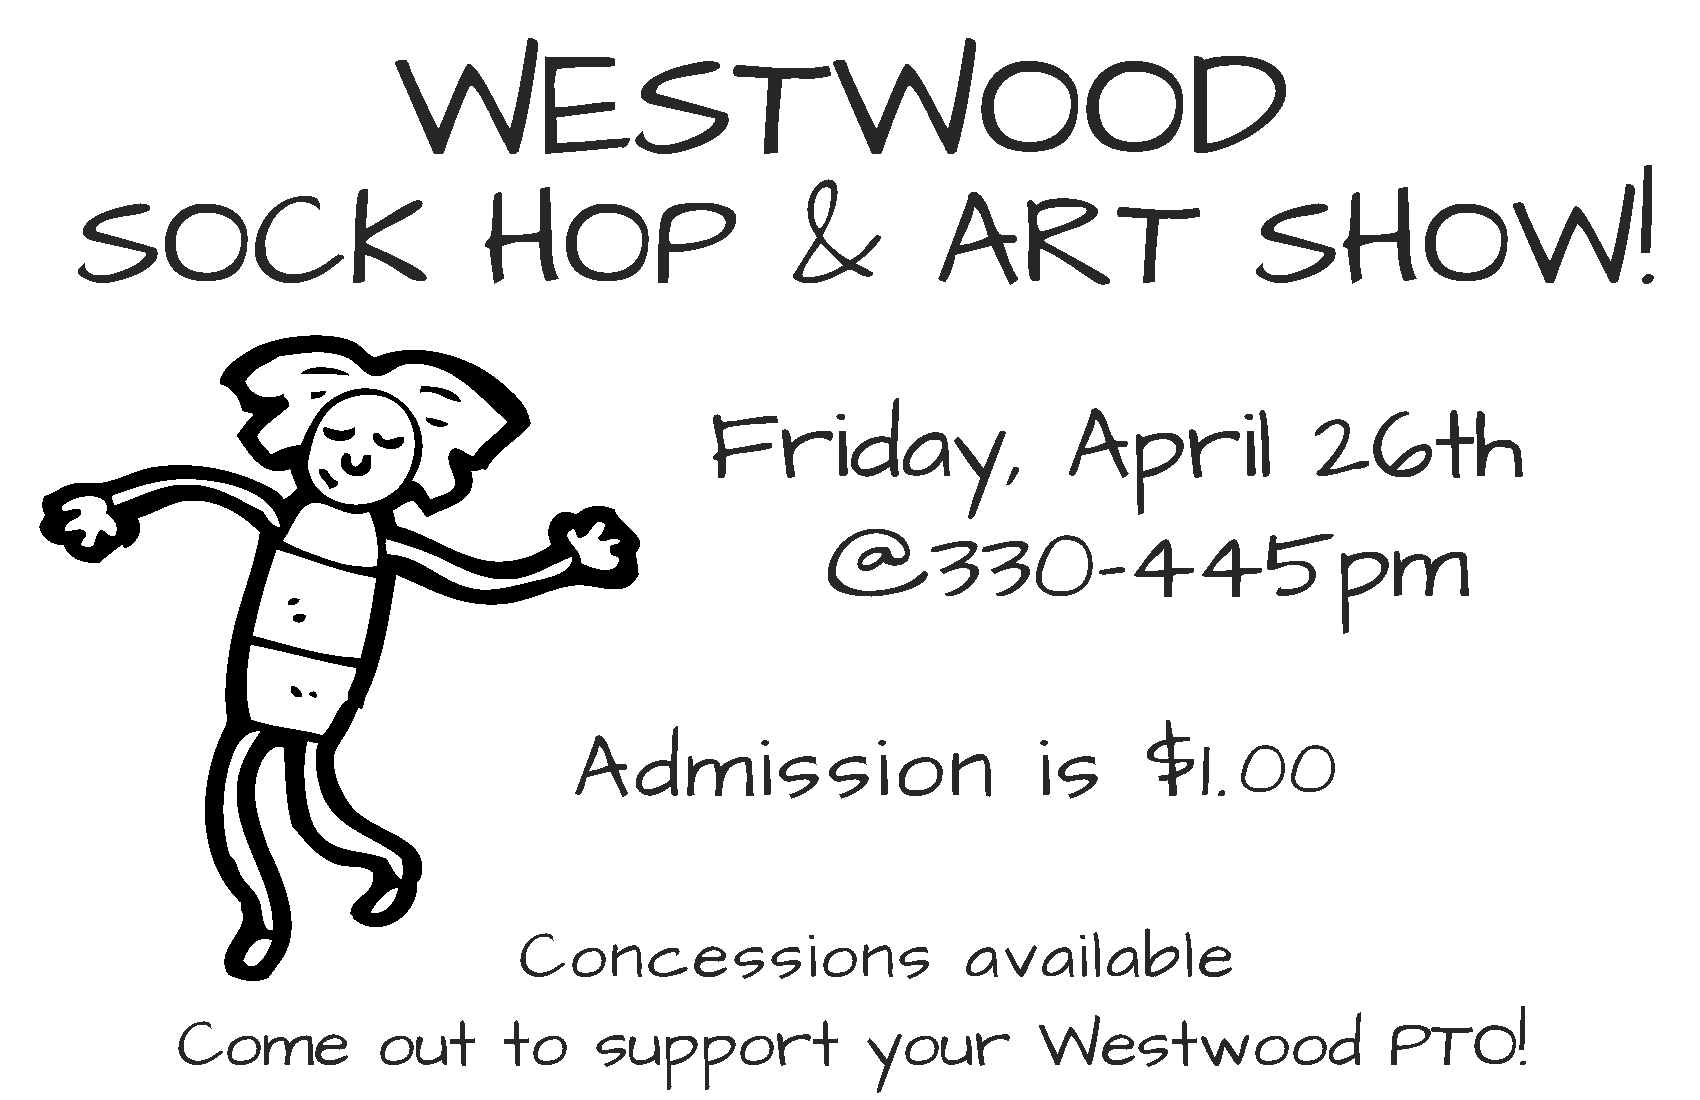 Image of the Westwood PTO sponsored Sock Hop & Art Show flyer